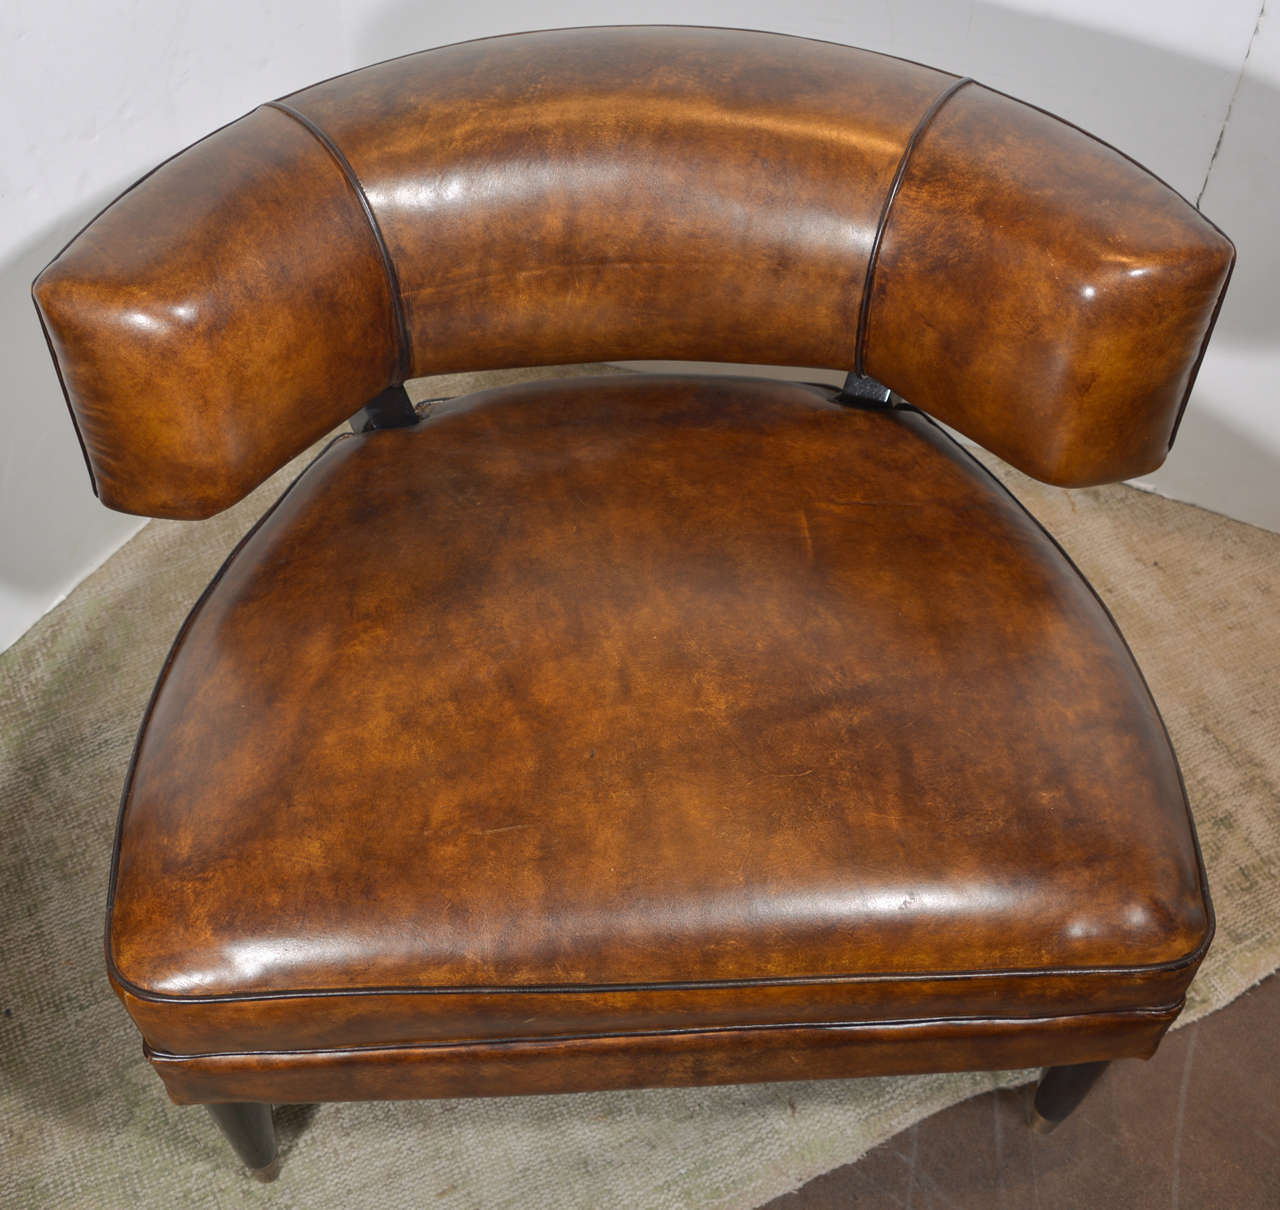 Laurent Glazed Leather Chair At 1stdibs